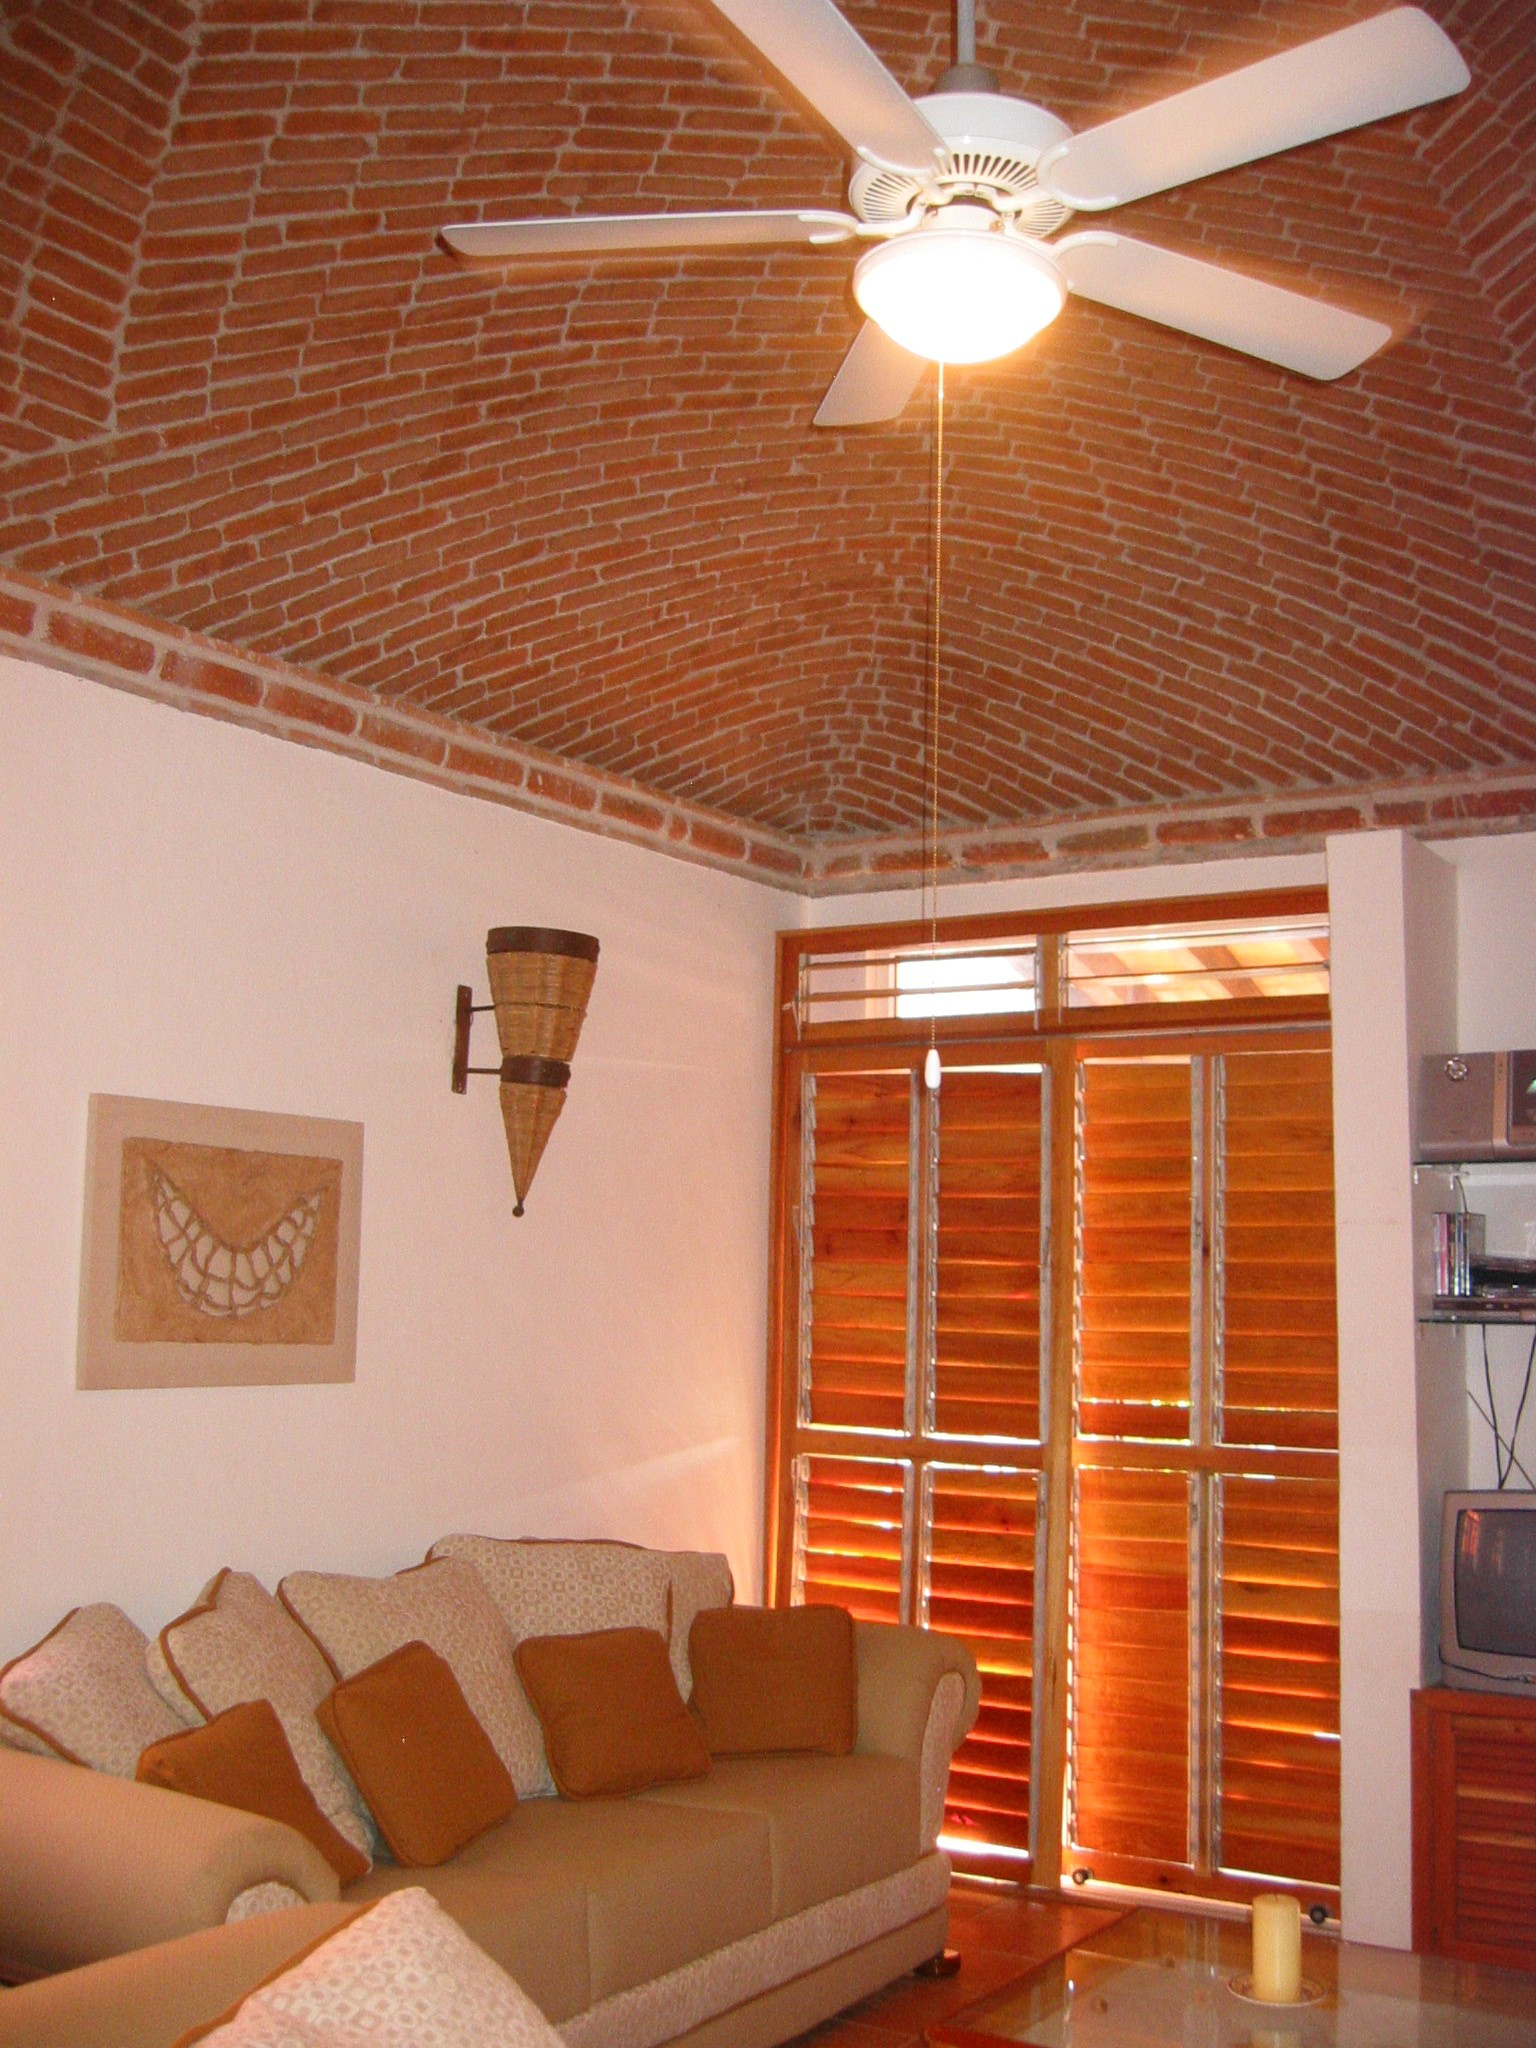 Choosing the right ceiling fan The Evanstonian